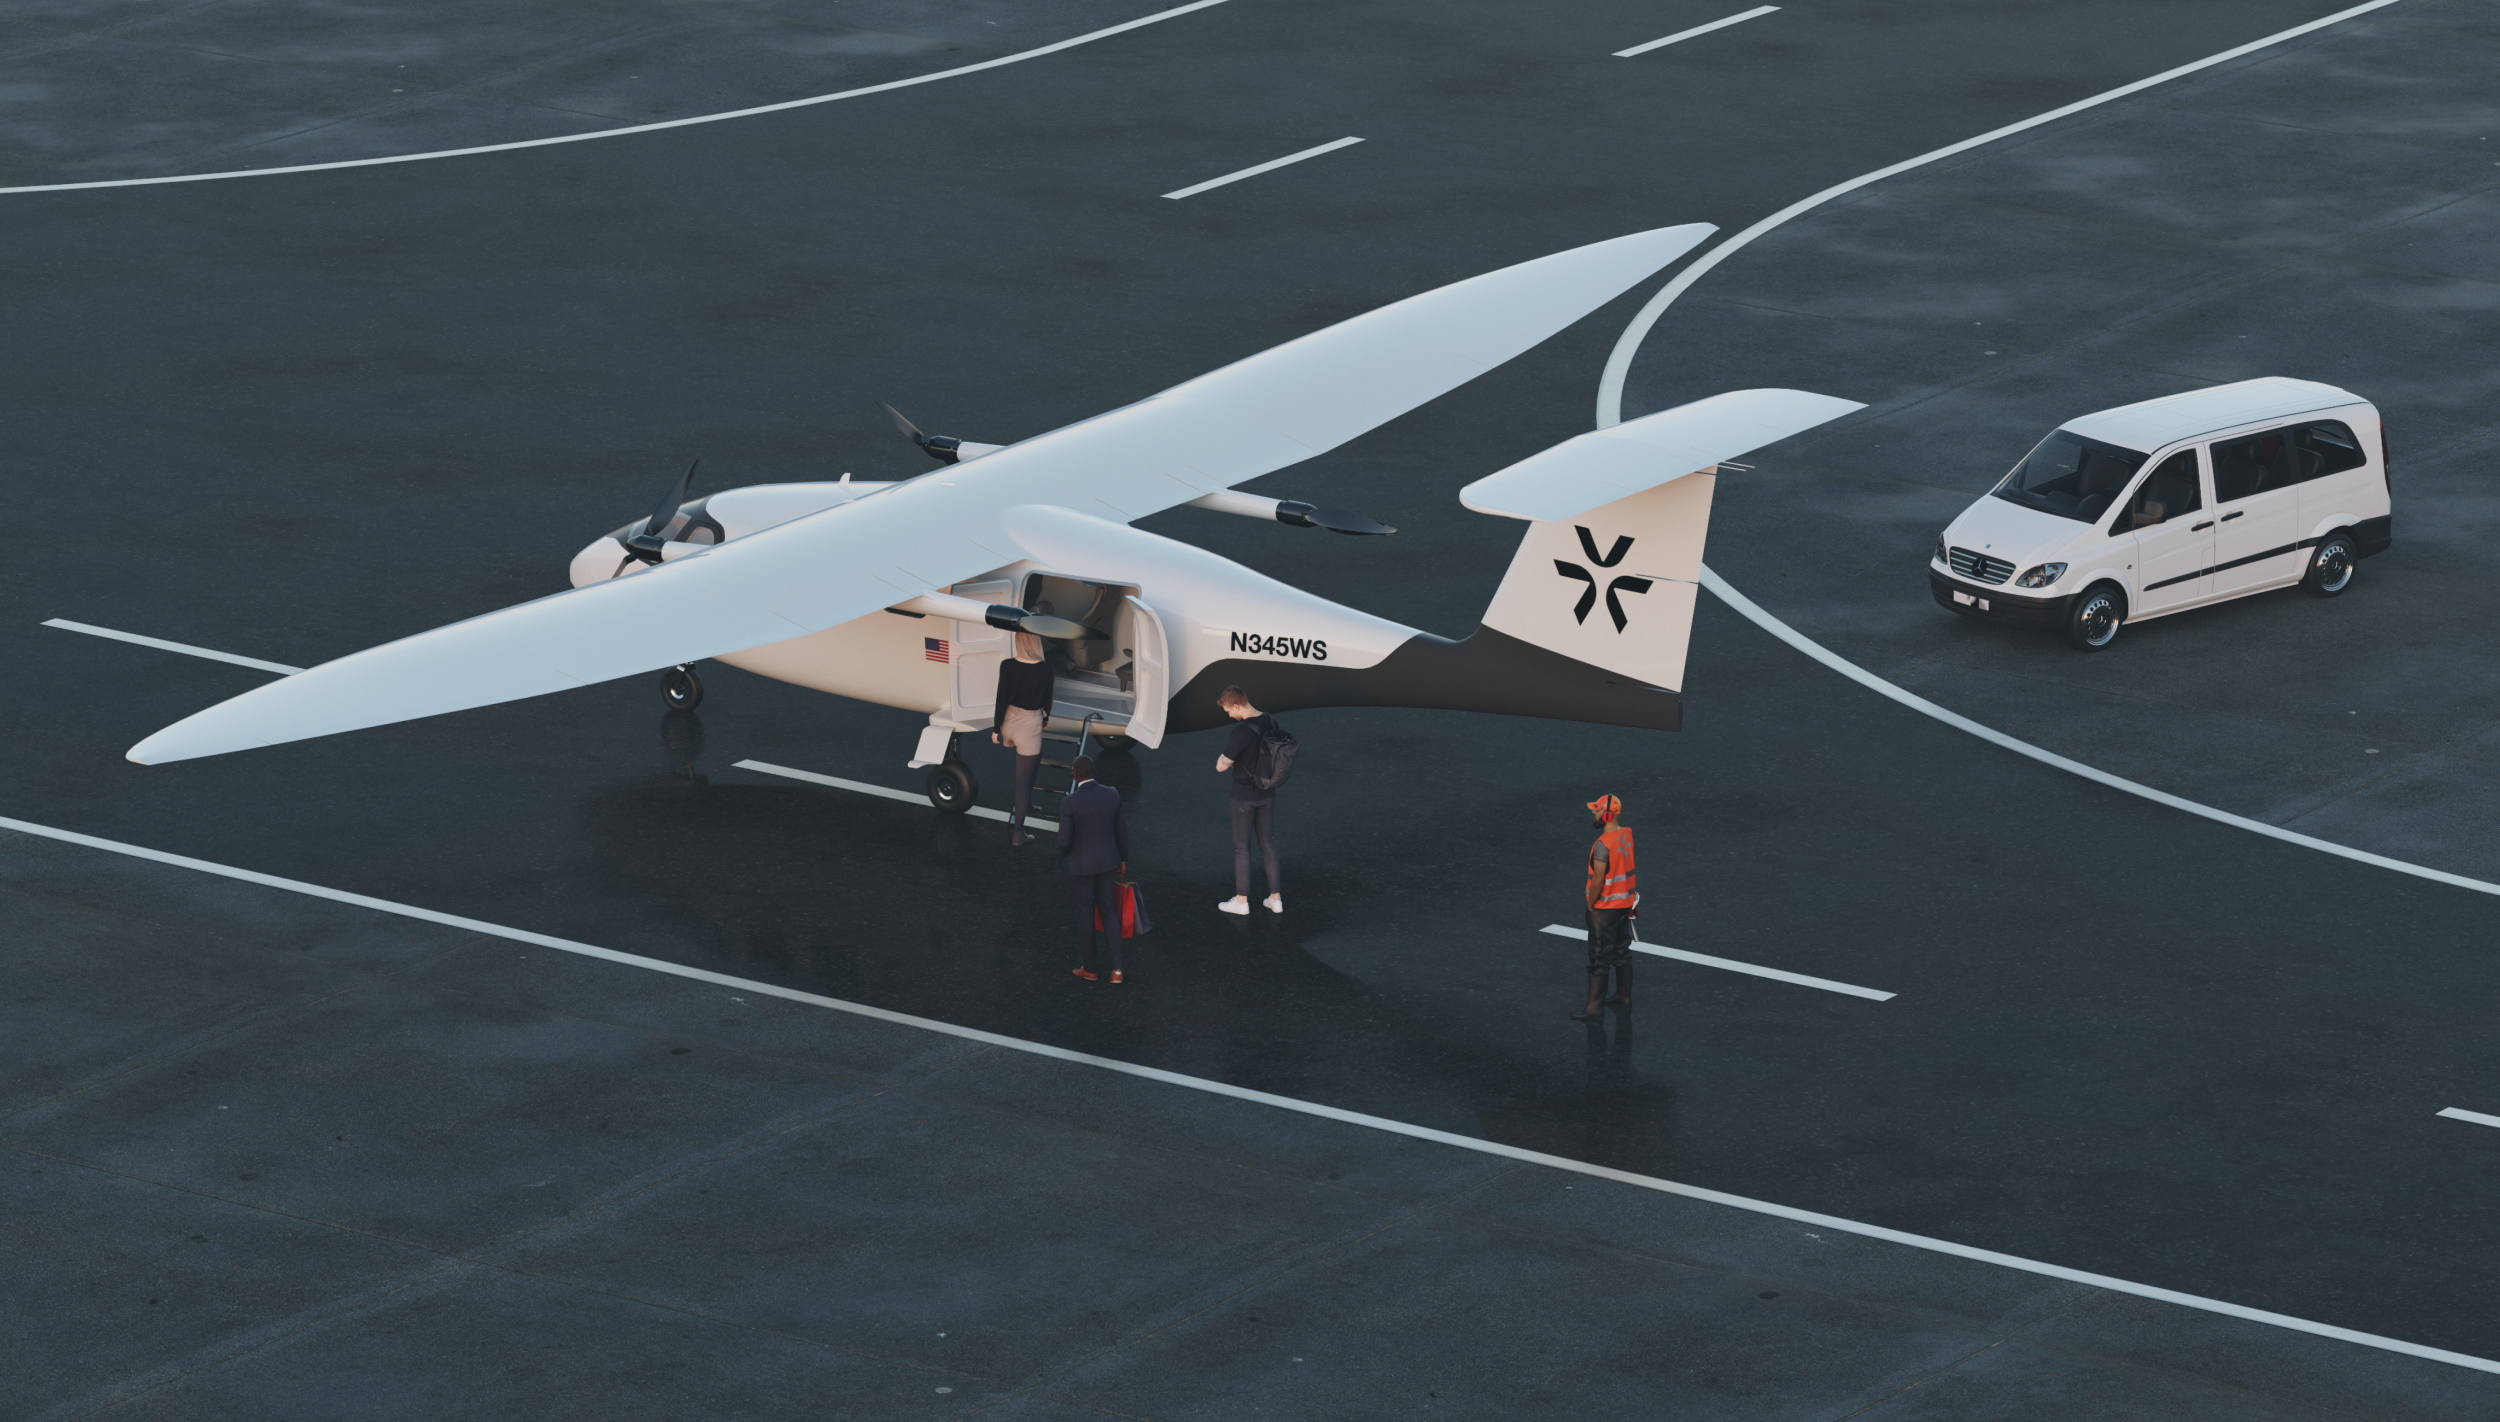 CG render of Pyka's P3 plane on a runway with people getting into it.